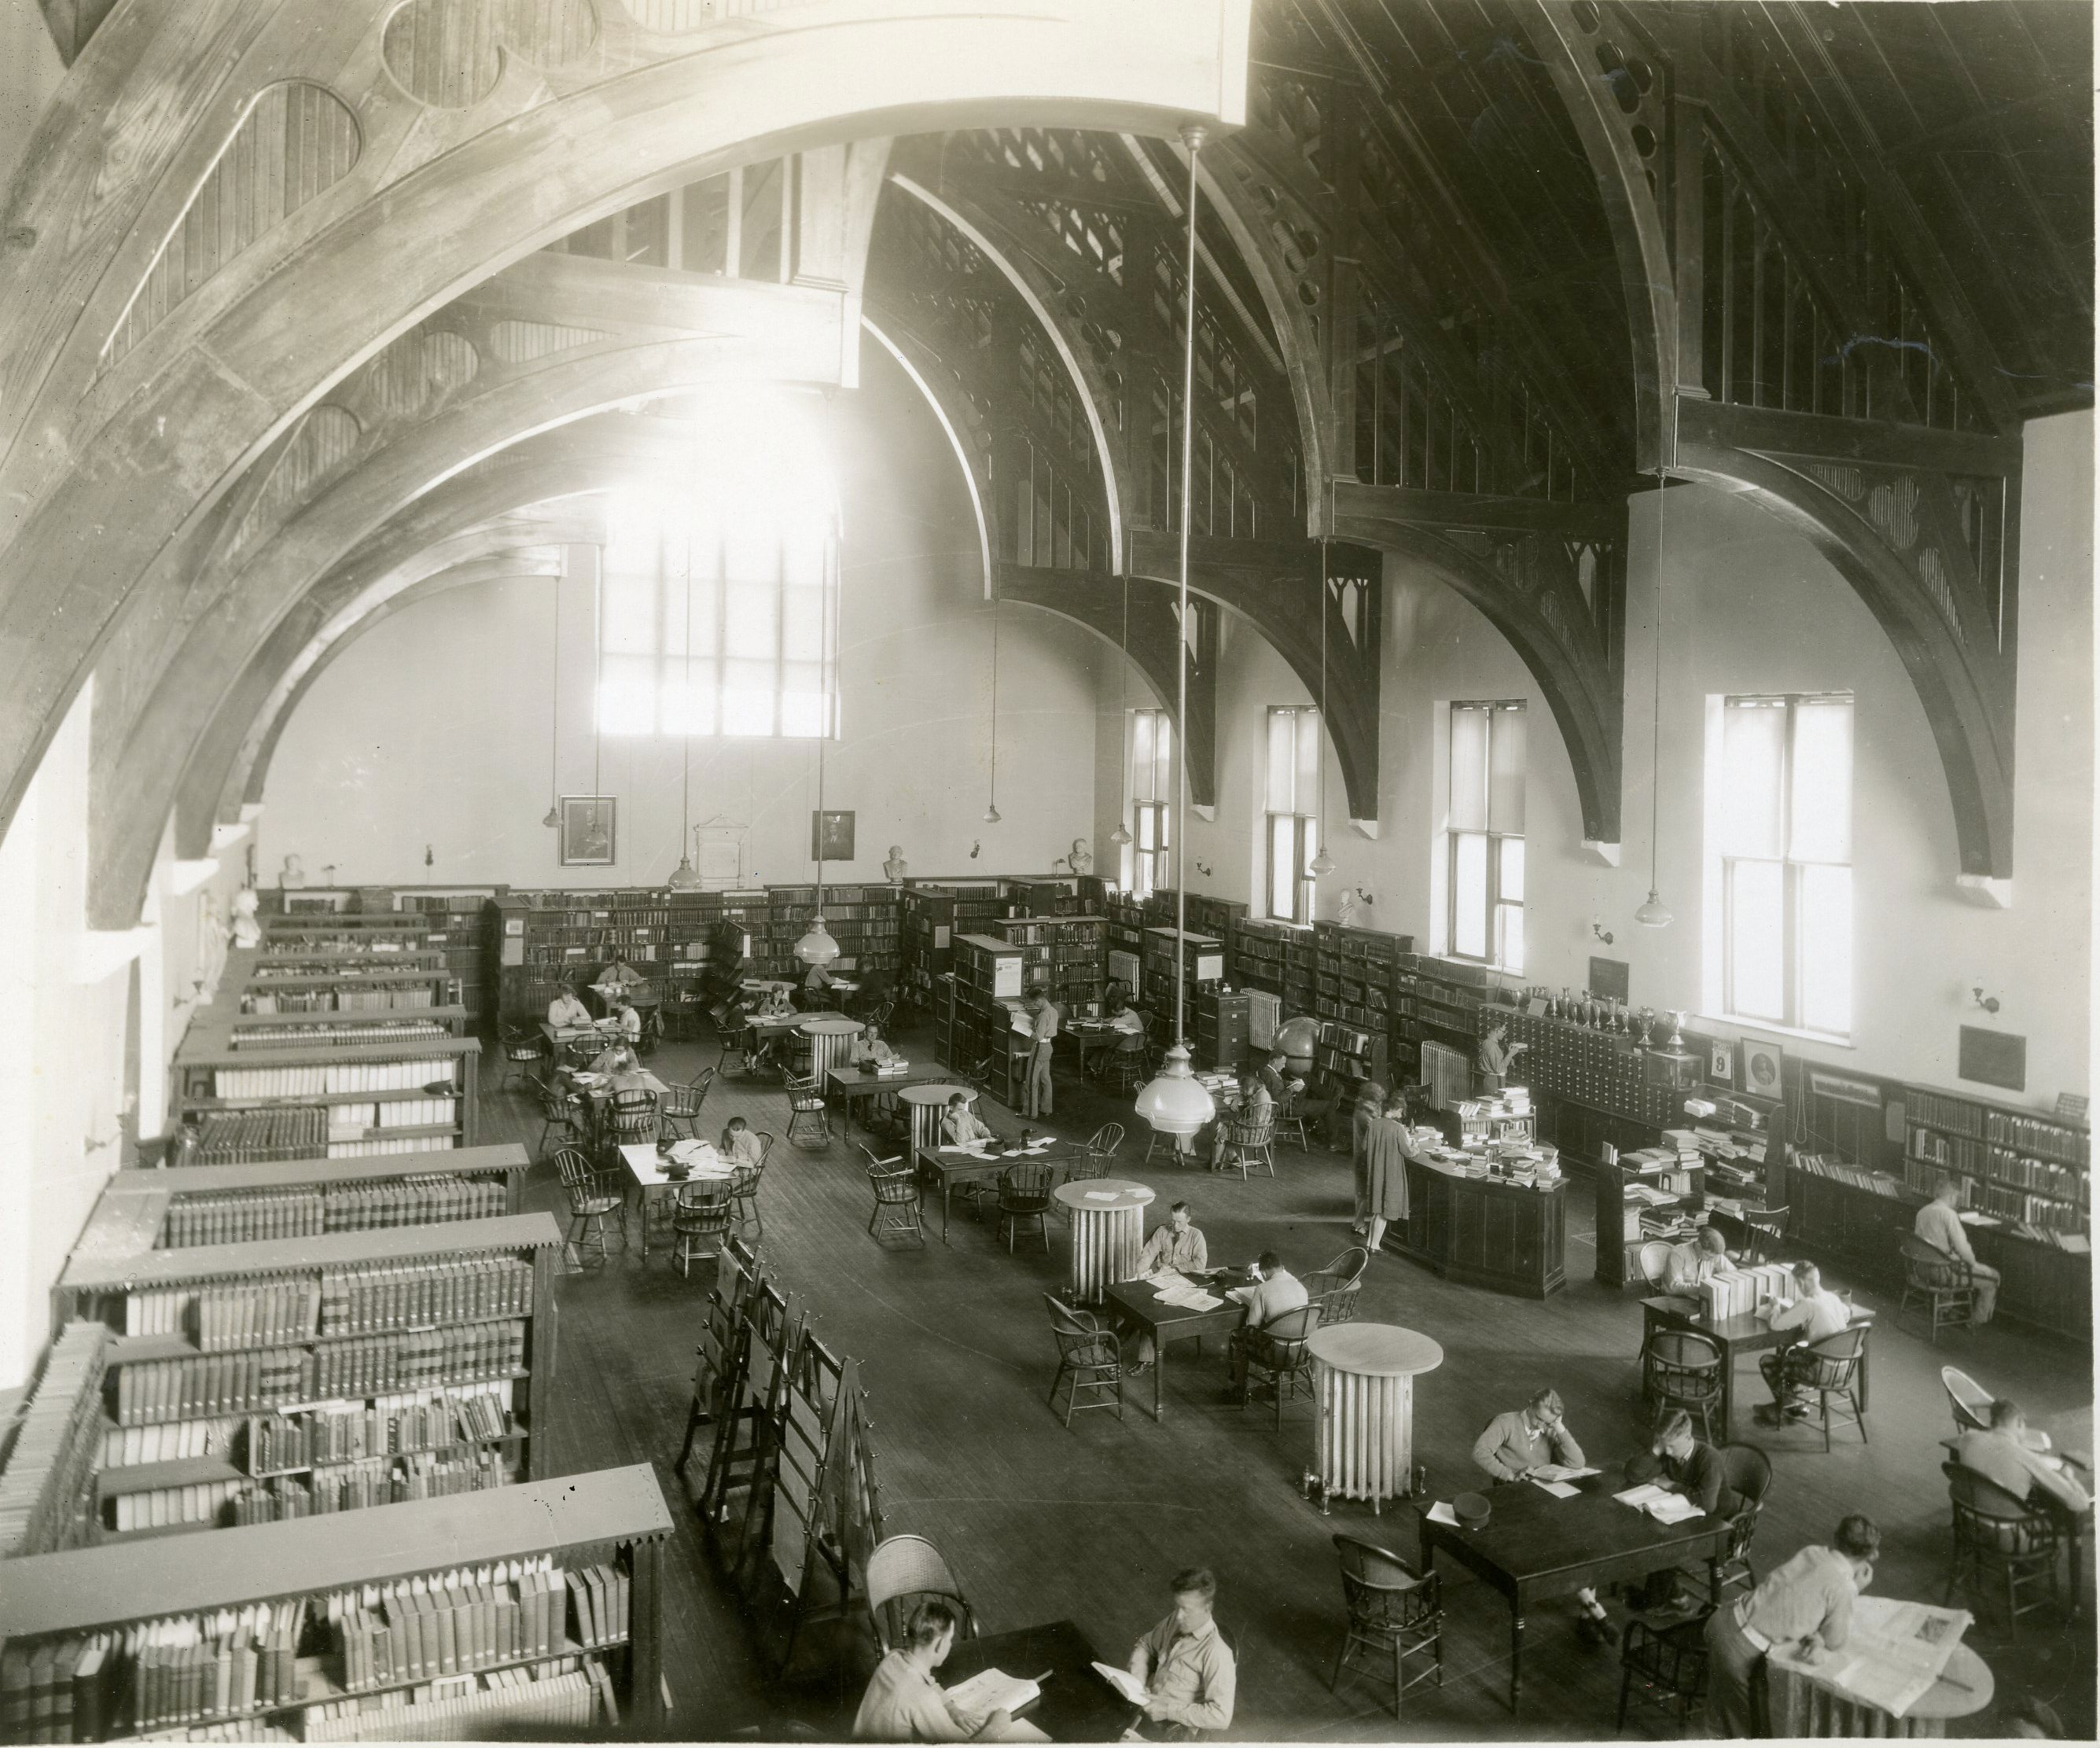 Old Library, interior, 1930